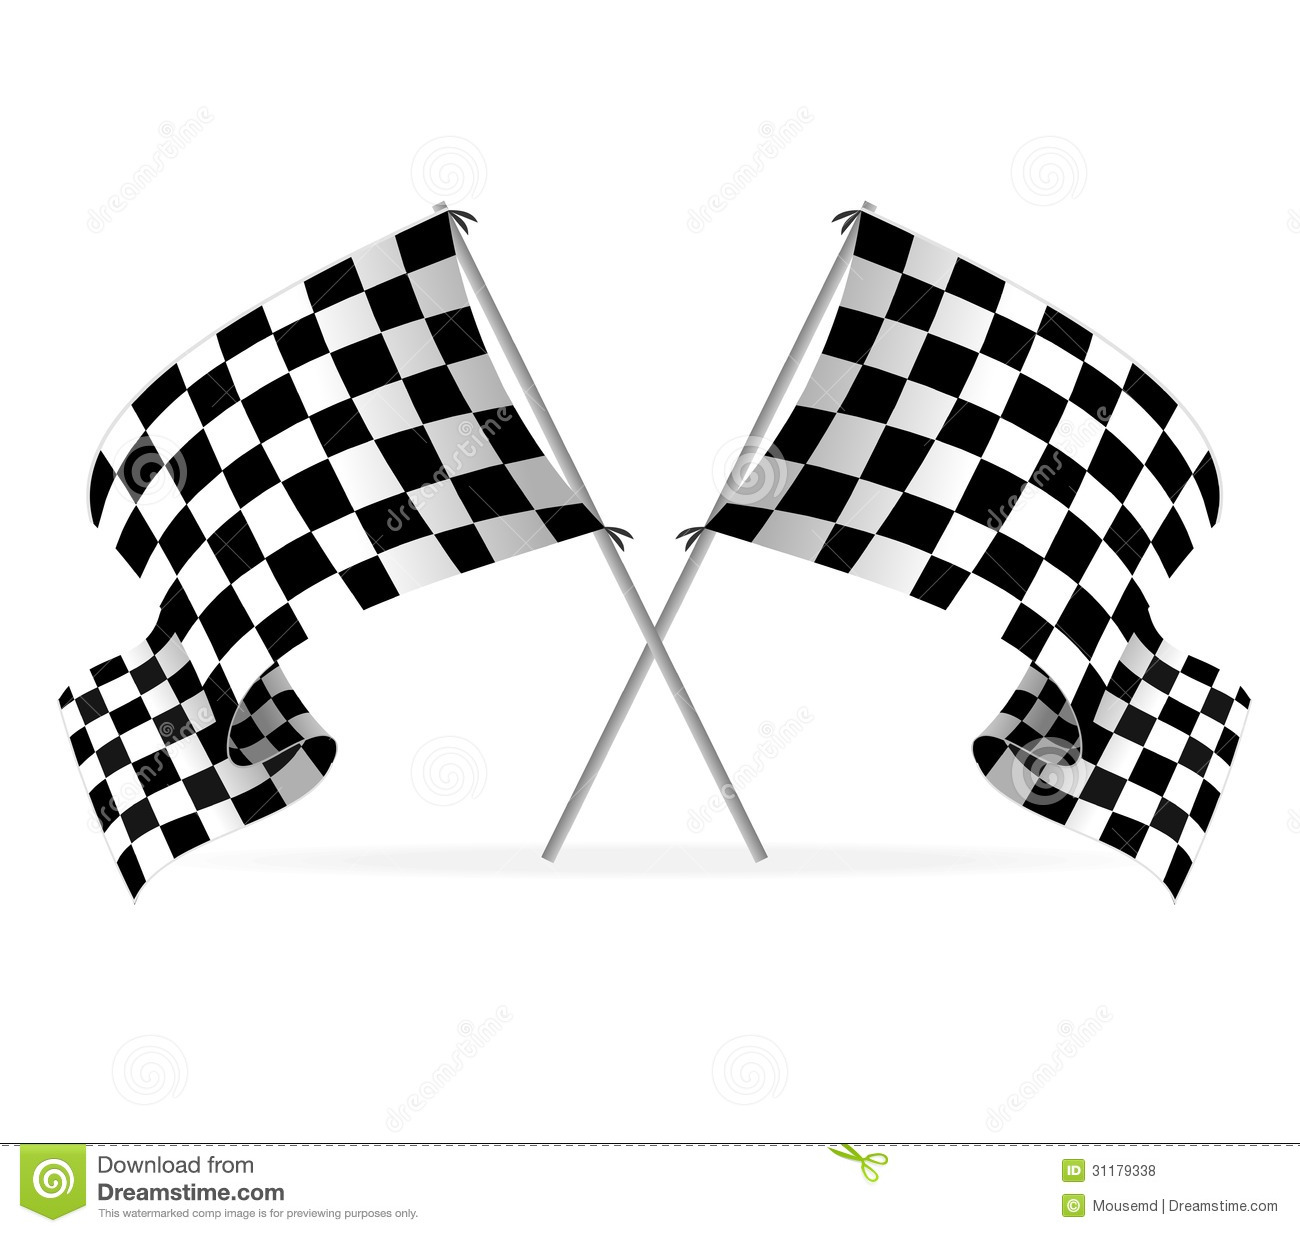 File Infineon  Sears Point  with emphasis on NASCAR track moreover Raceway Checkered Flag Banner furthermore Clipart PT56yoaTB also Royalty Free Stock Photos Vector Racing Flags File Eps Format Image31179338 as well Race Car Clipart Image 25622. on nascar line art